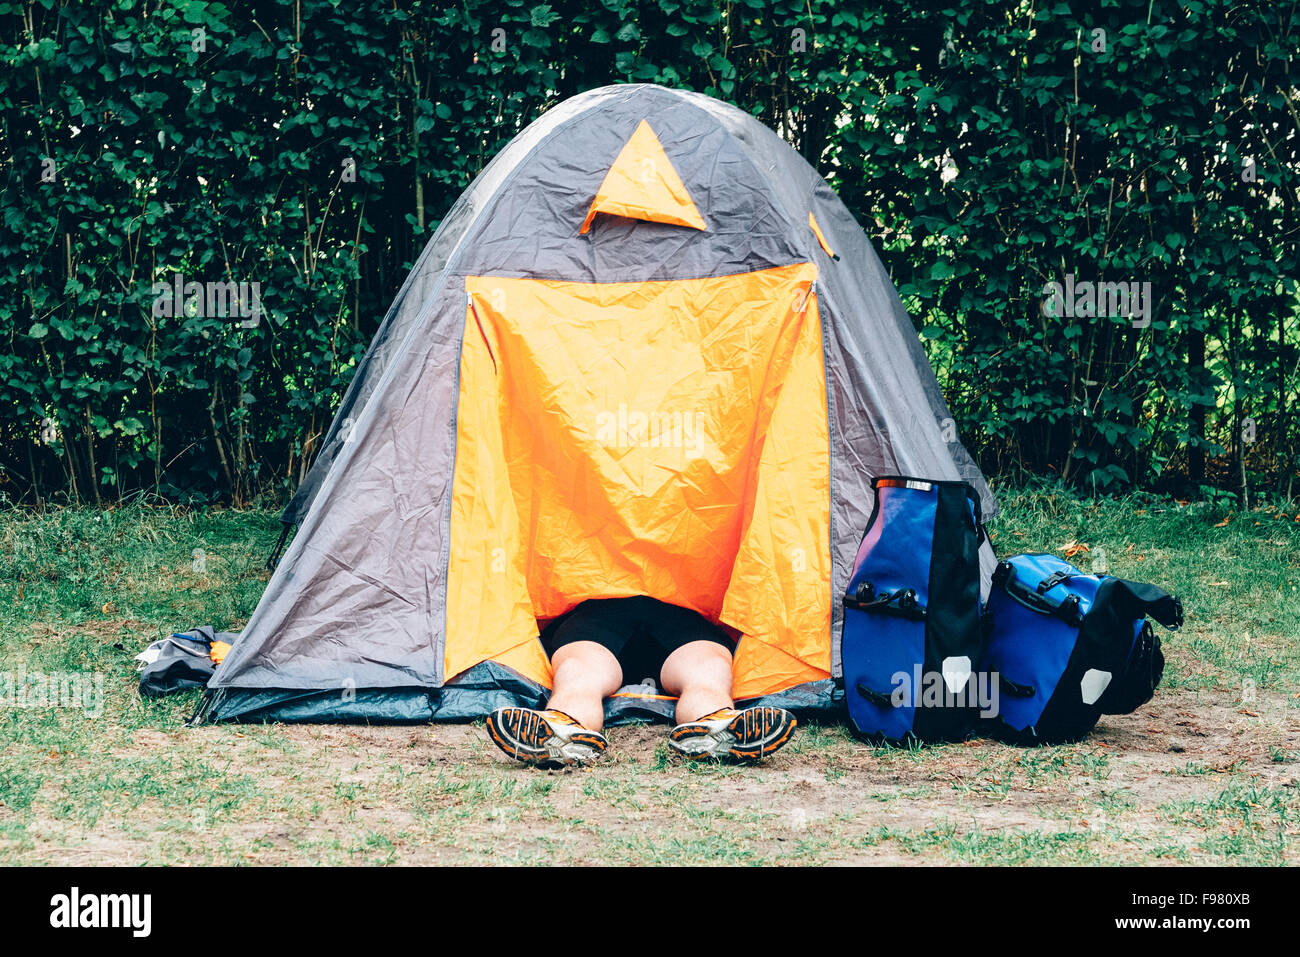 Low Section Of Person Resting In Tent On Field At Campsite - Stock Image